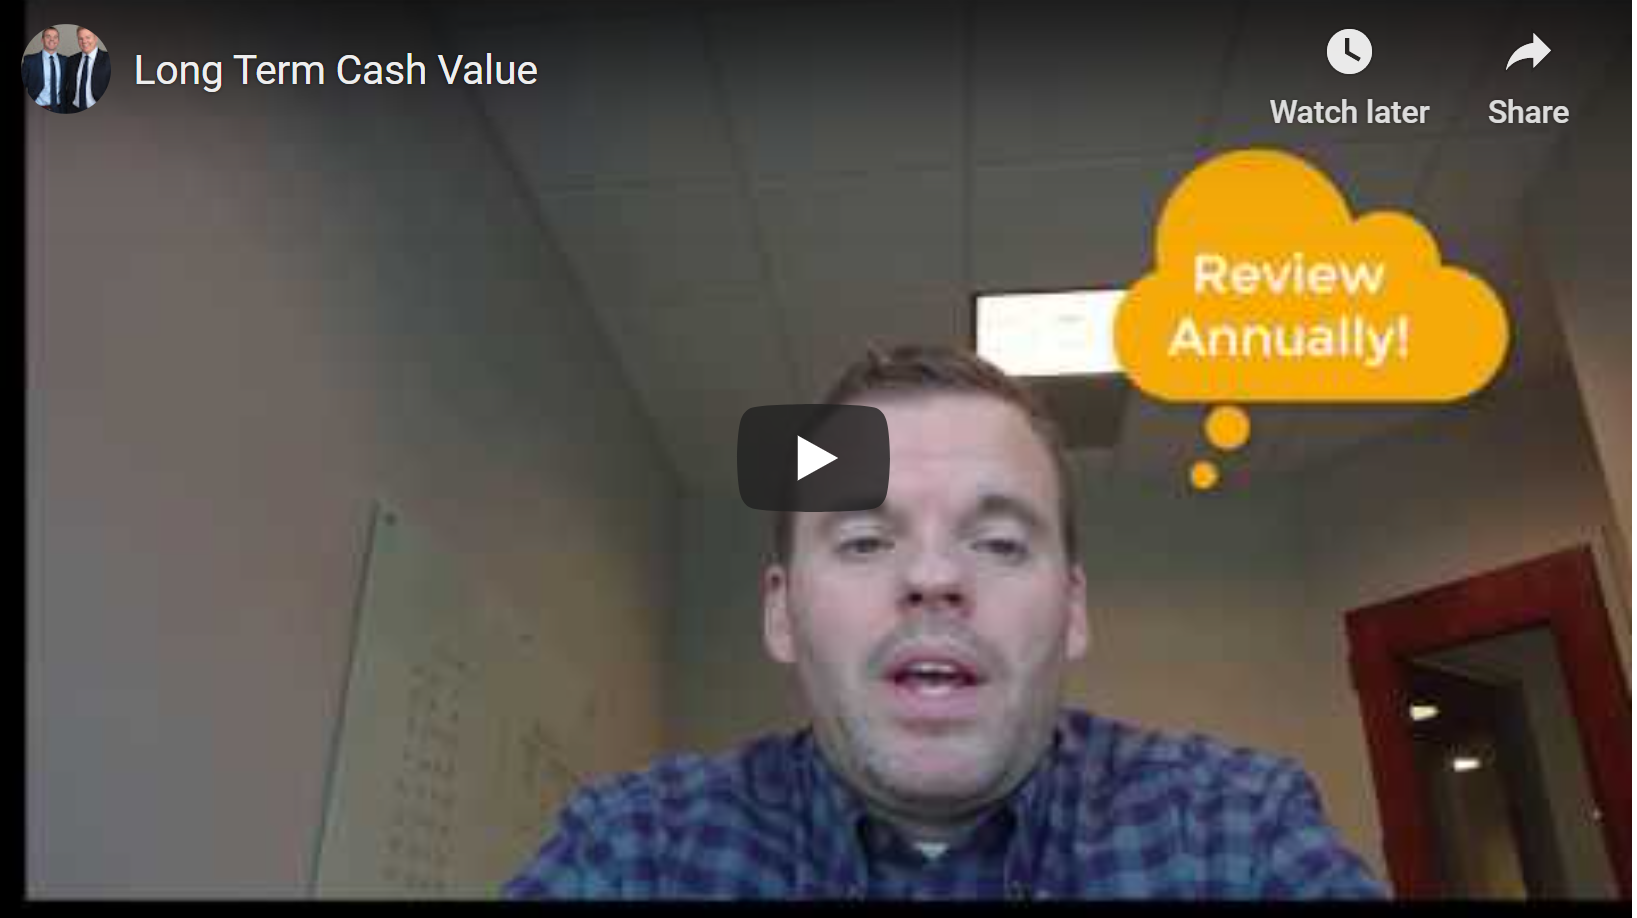 Long-Term Cash Value Thumbnail